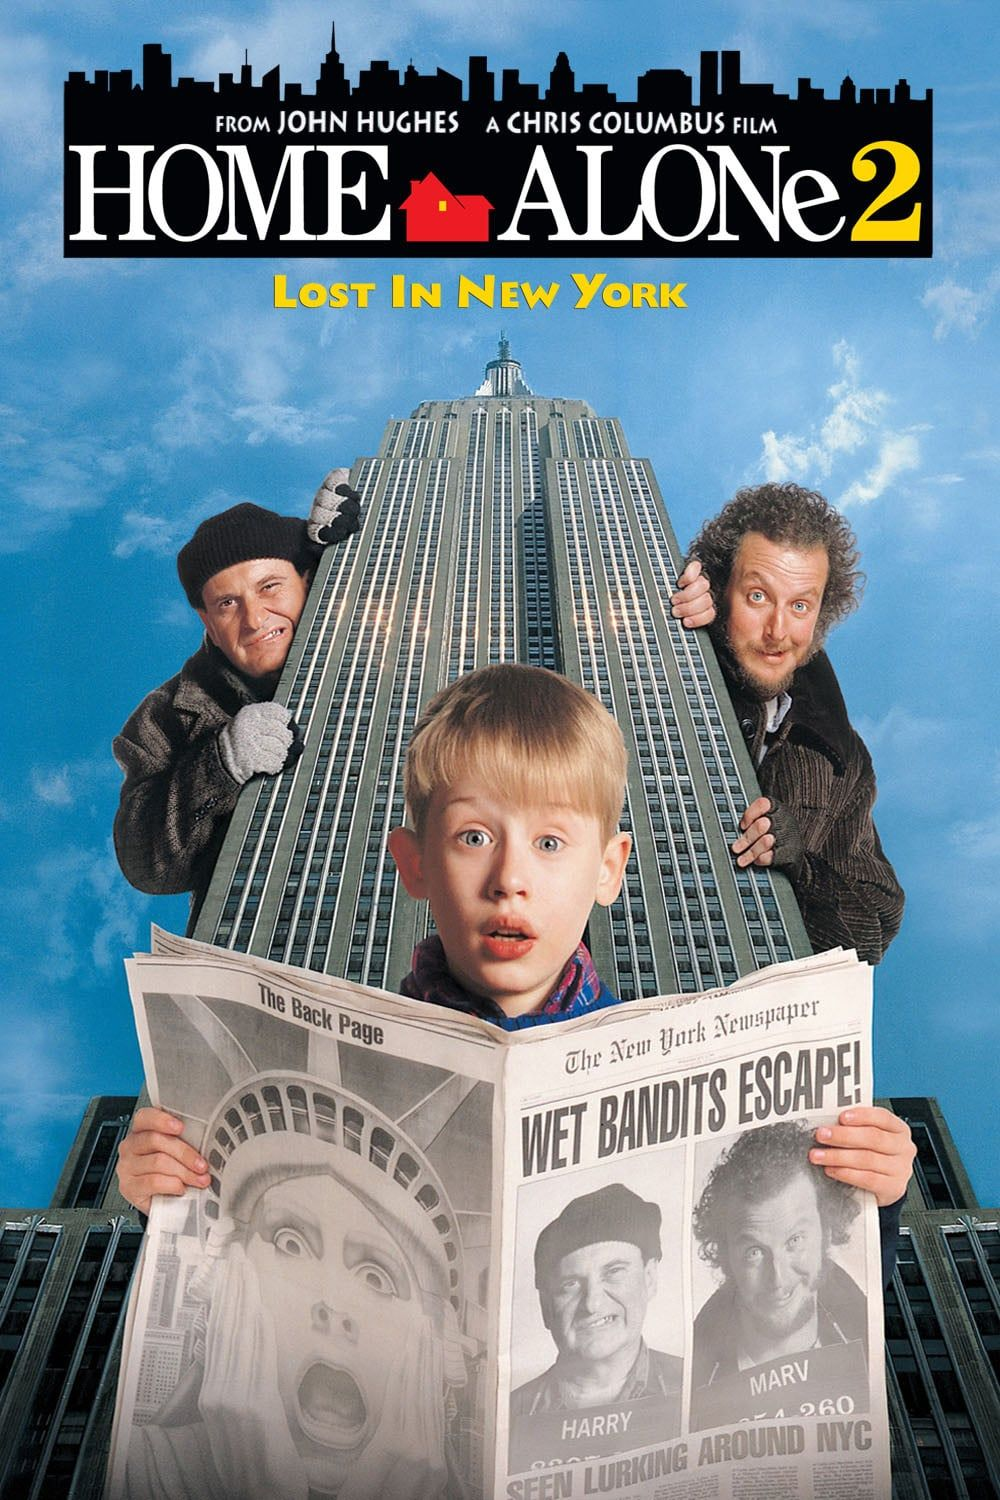 Devin Ratray - Signed Home Alone 2 Movie Poster Image (8x10, 11x17)